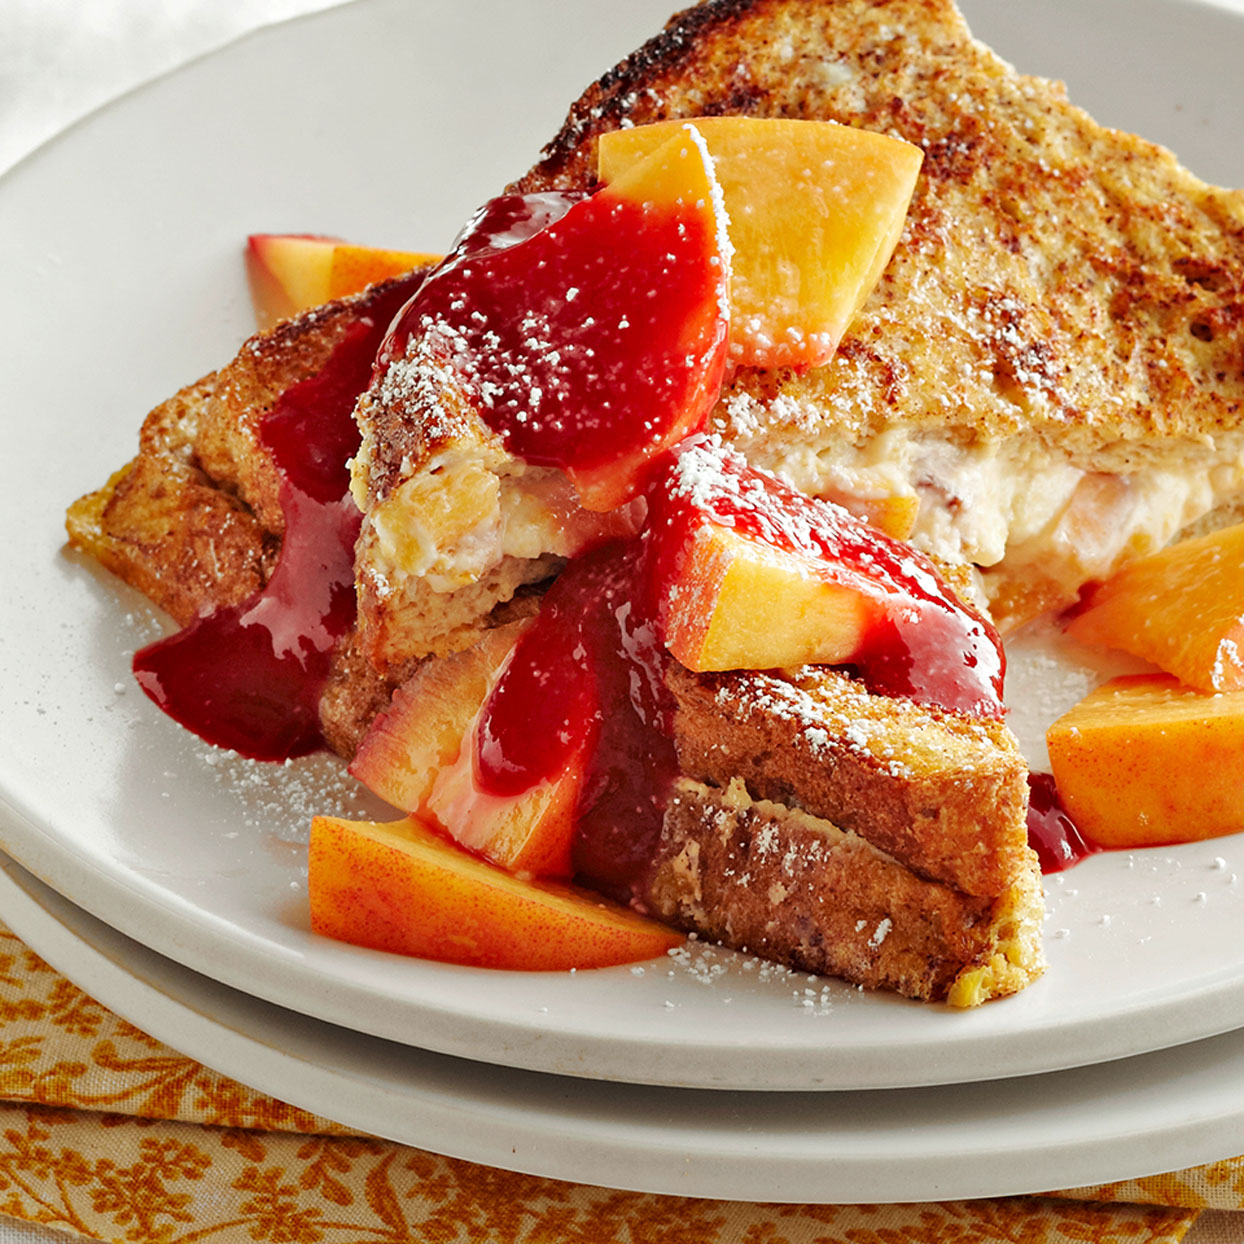 Overnight French toast recipes are easy to prepare and a great choice when you have houseguests who'll want a hearty and special breakfast in the morning. This recipe is extra-special because the French toast is stuffed with a cream cheese and raspberry filling which becomes an ooey-gooey treat in each bite. Topped with a raspberry sauce, fresh peaches, and powdered sugar, this breakfast recipe will be a hit with everyone at your table.